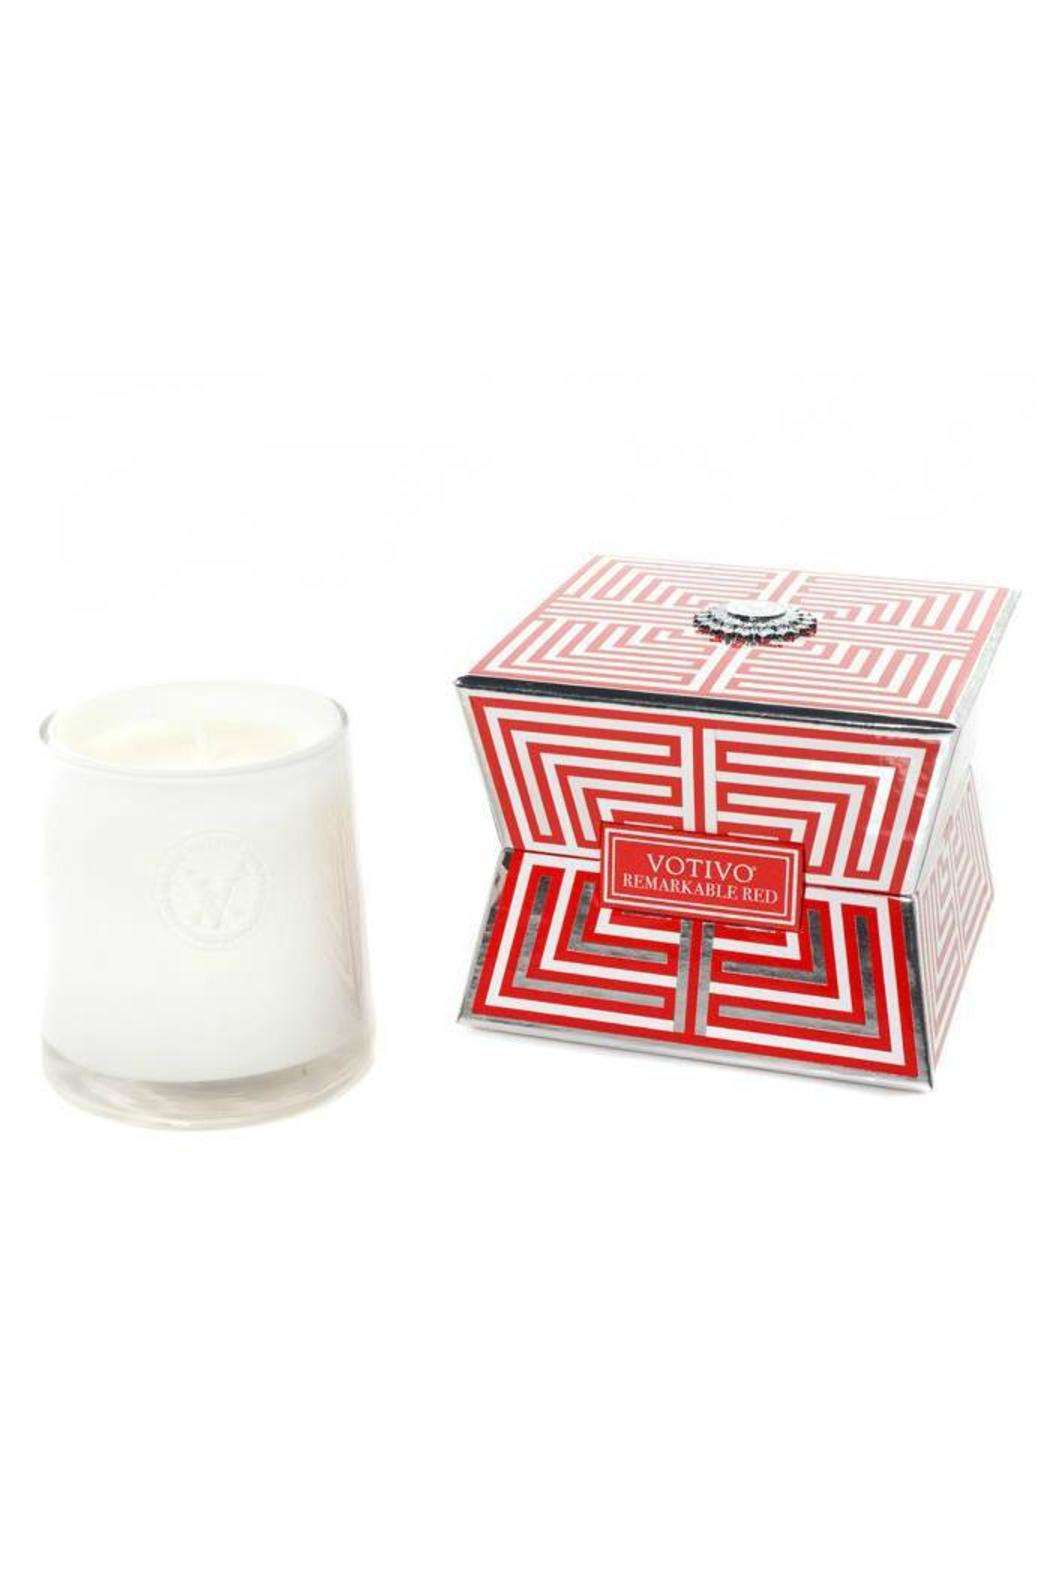 Votivo Aromatic Candles Remarkable Red Soziety Candle - Main Image